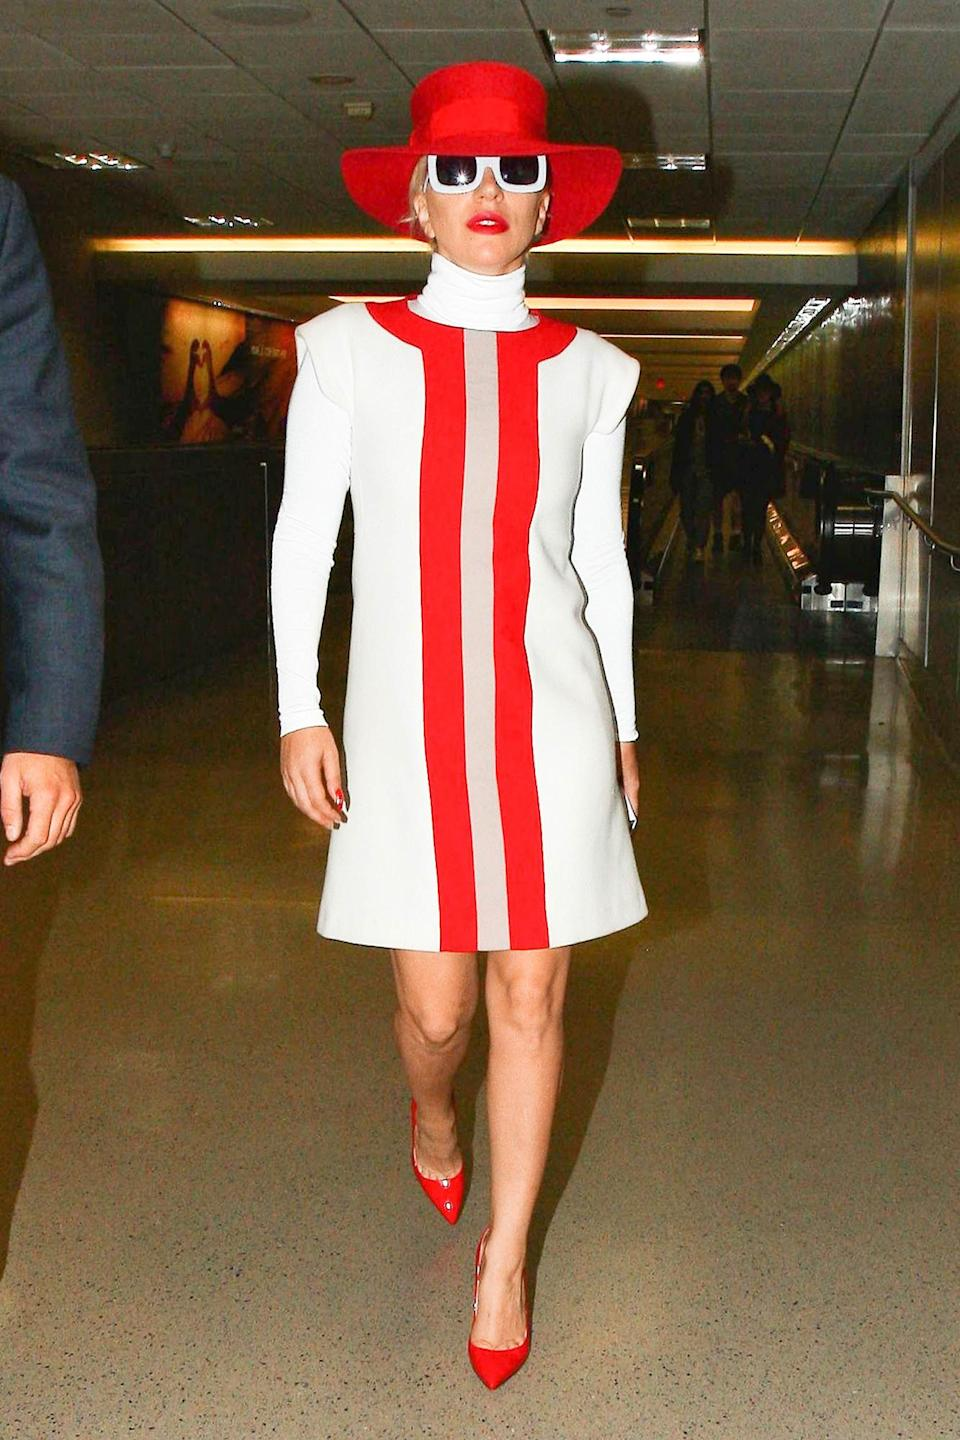 <p>No meat dress this time - the pop star at LAX in crisp (if not comfy-looking) red and white.</p>